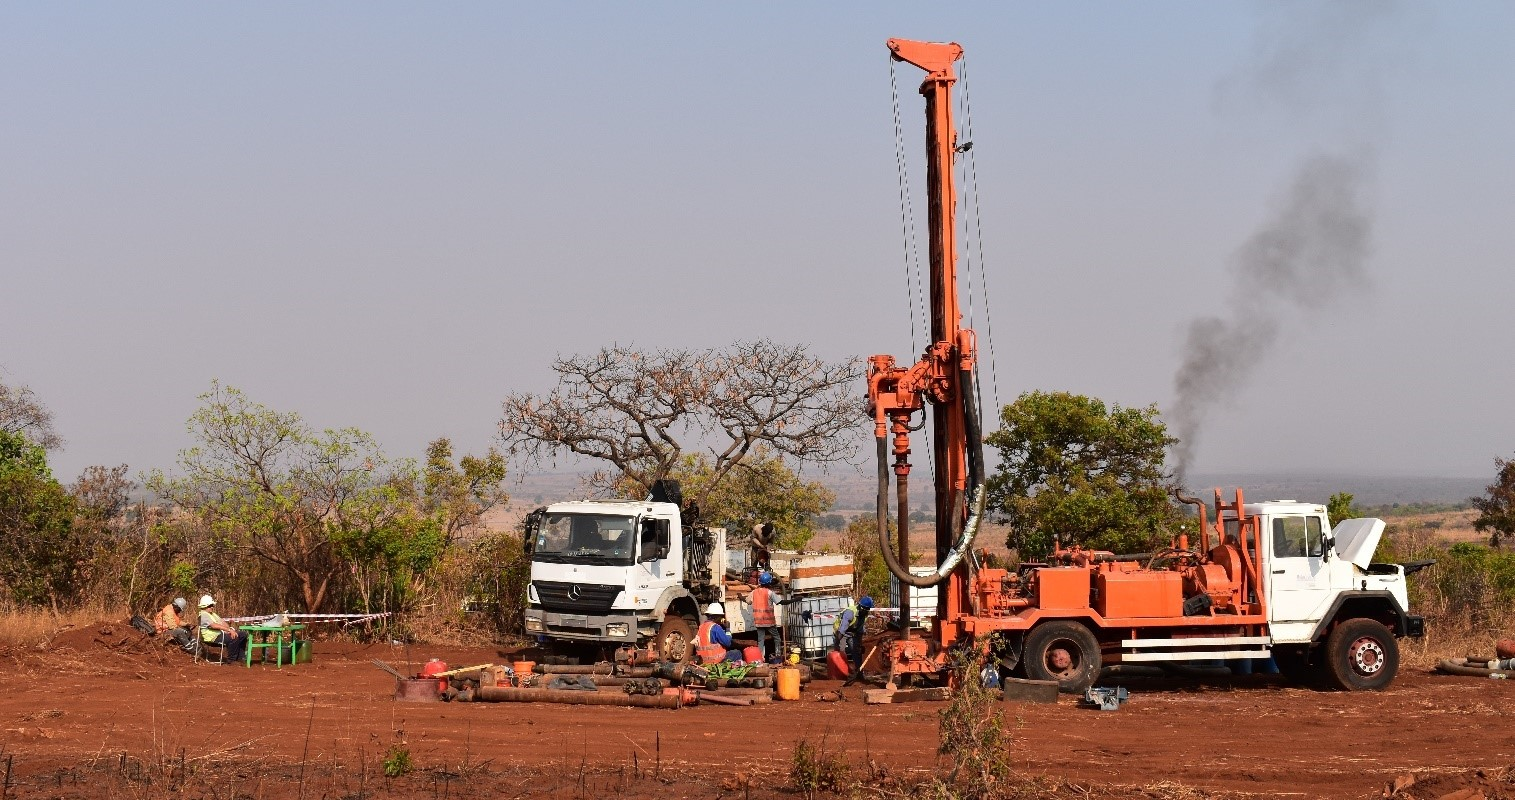 Drilling WB001 water bore - Monday 26 August 2019